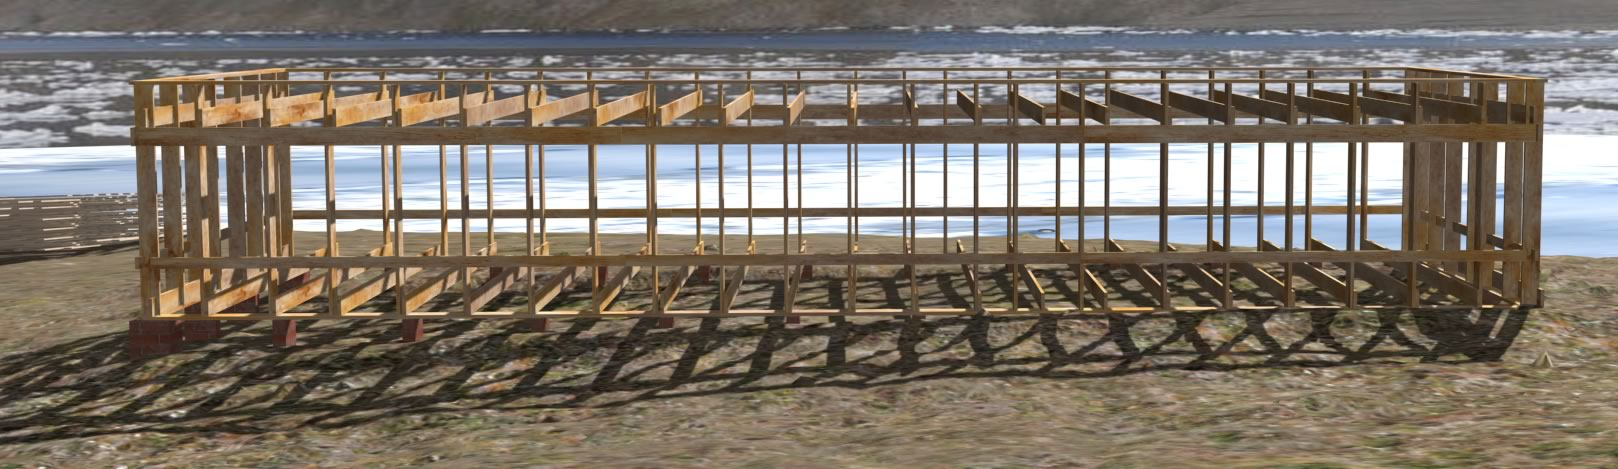 Virtual reconstruction of the same historic photo showing the house frame fully erected. Discovery Harbor is visible in the background.